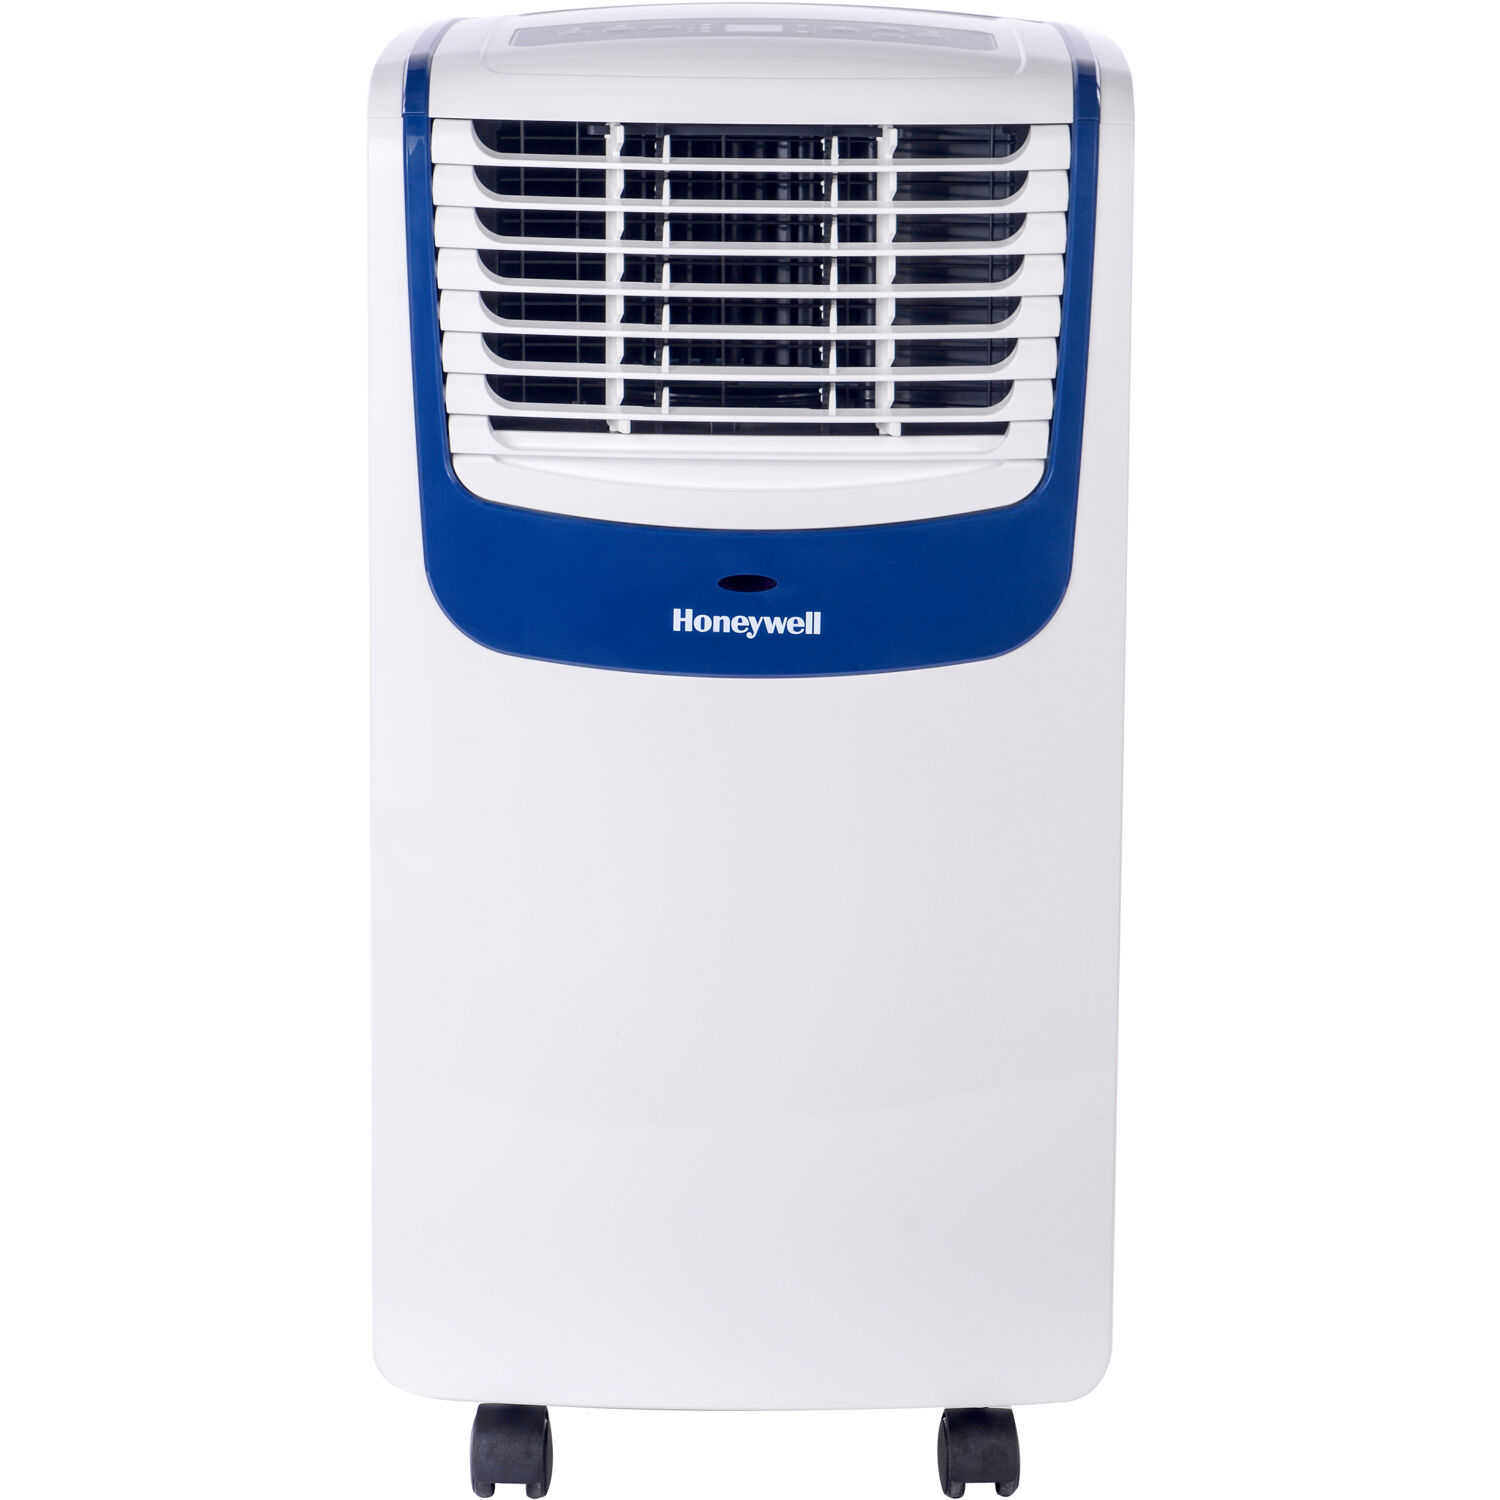 Honeywell MO Series Compact 3-in-1 Portable Air Conditioner with Remote Control for Rooms up to 350 Sq. Ft. in White/Blue